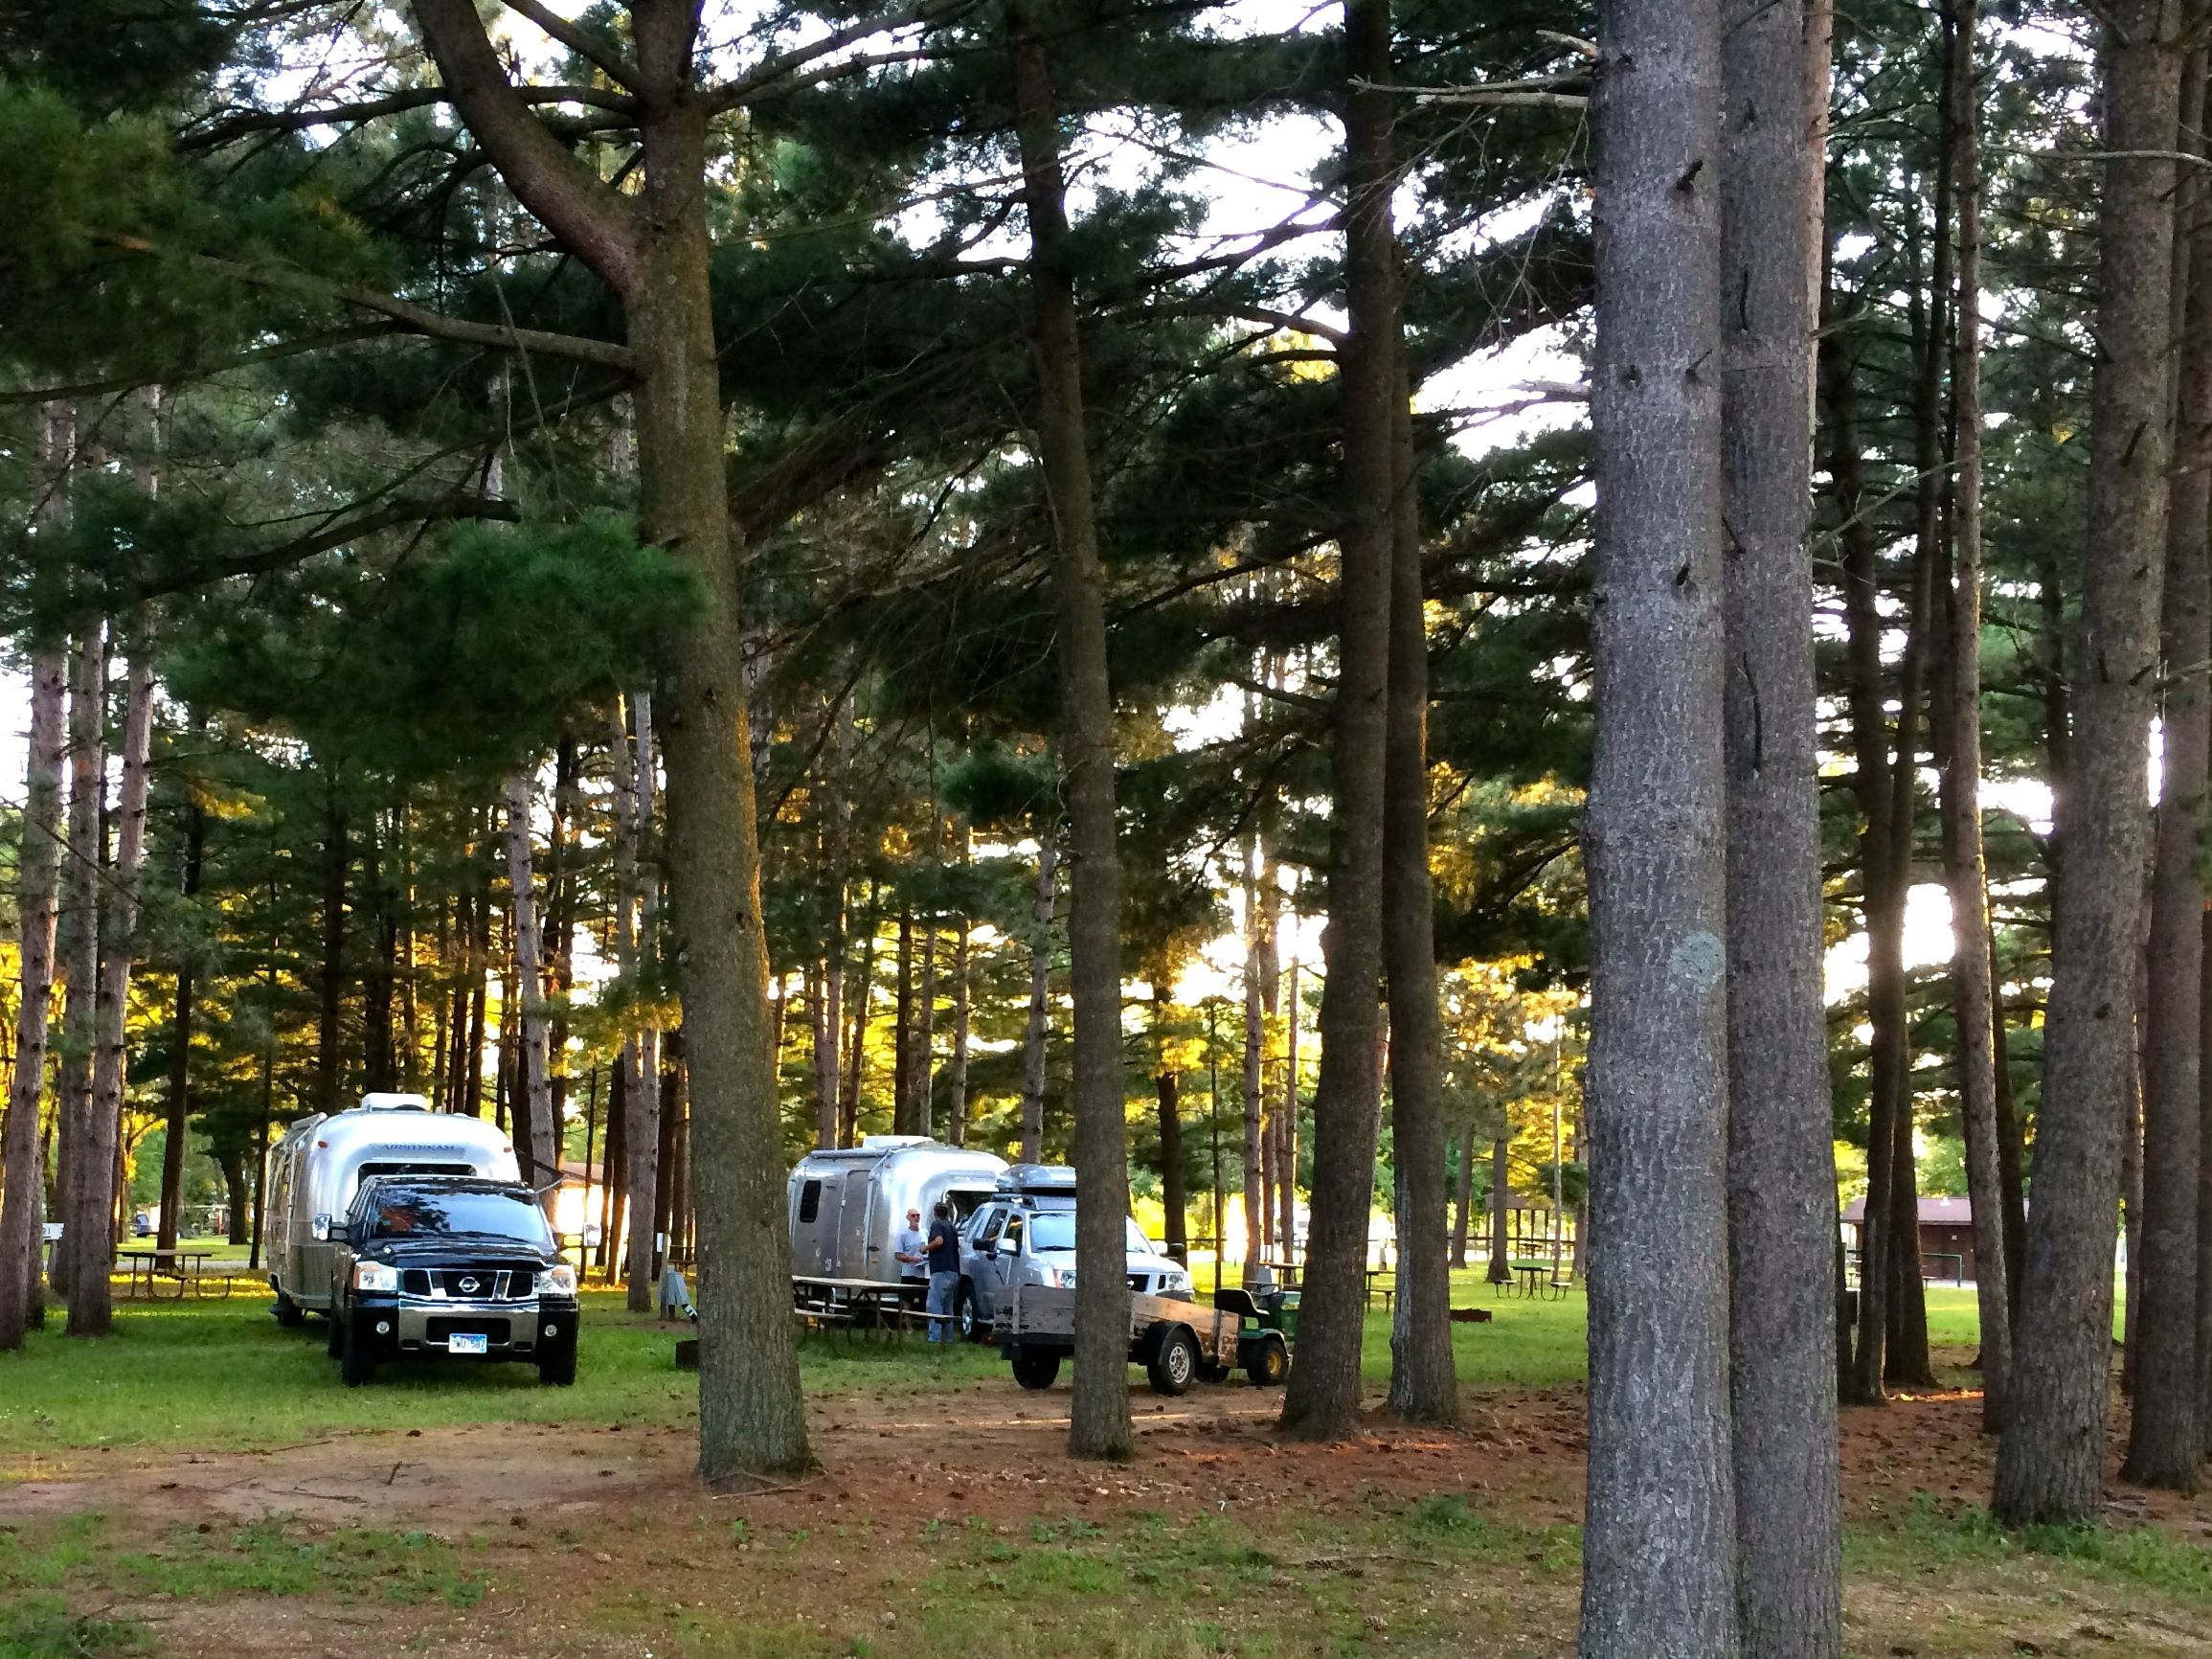 A small Airstream rally